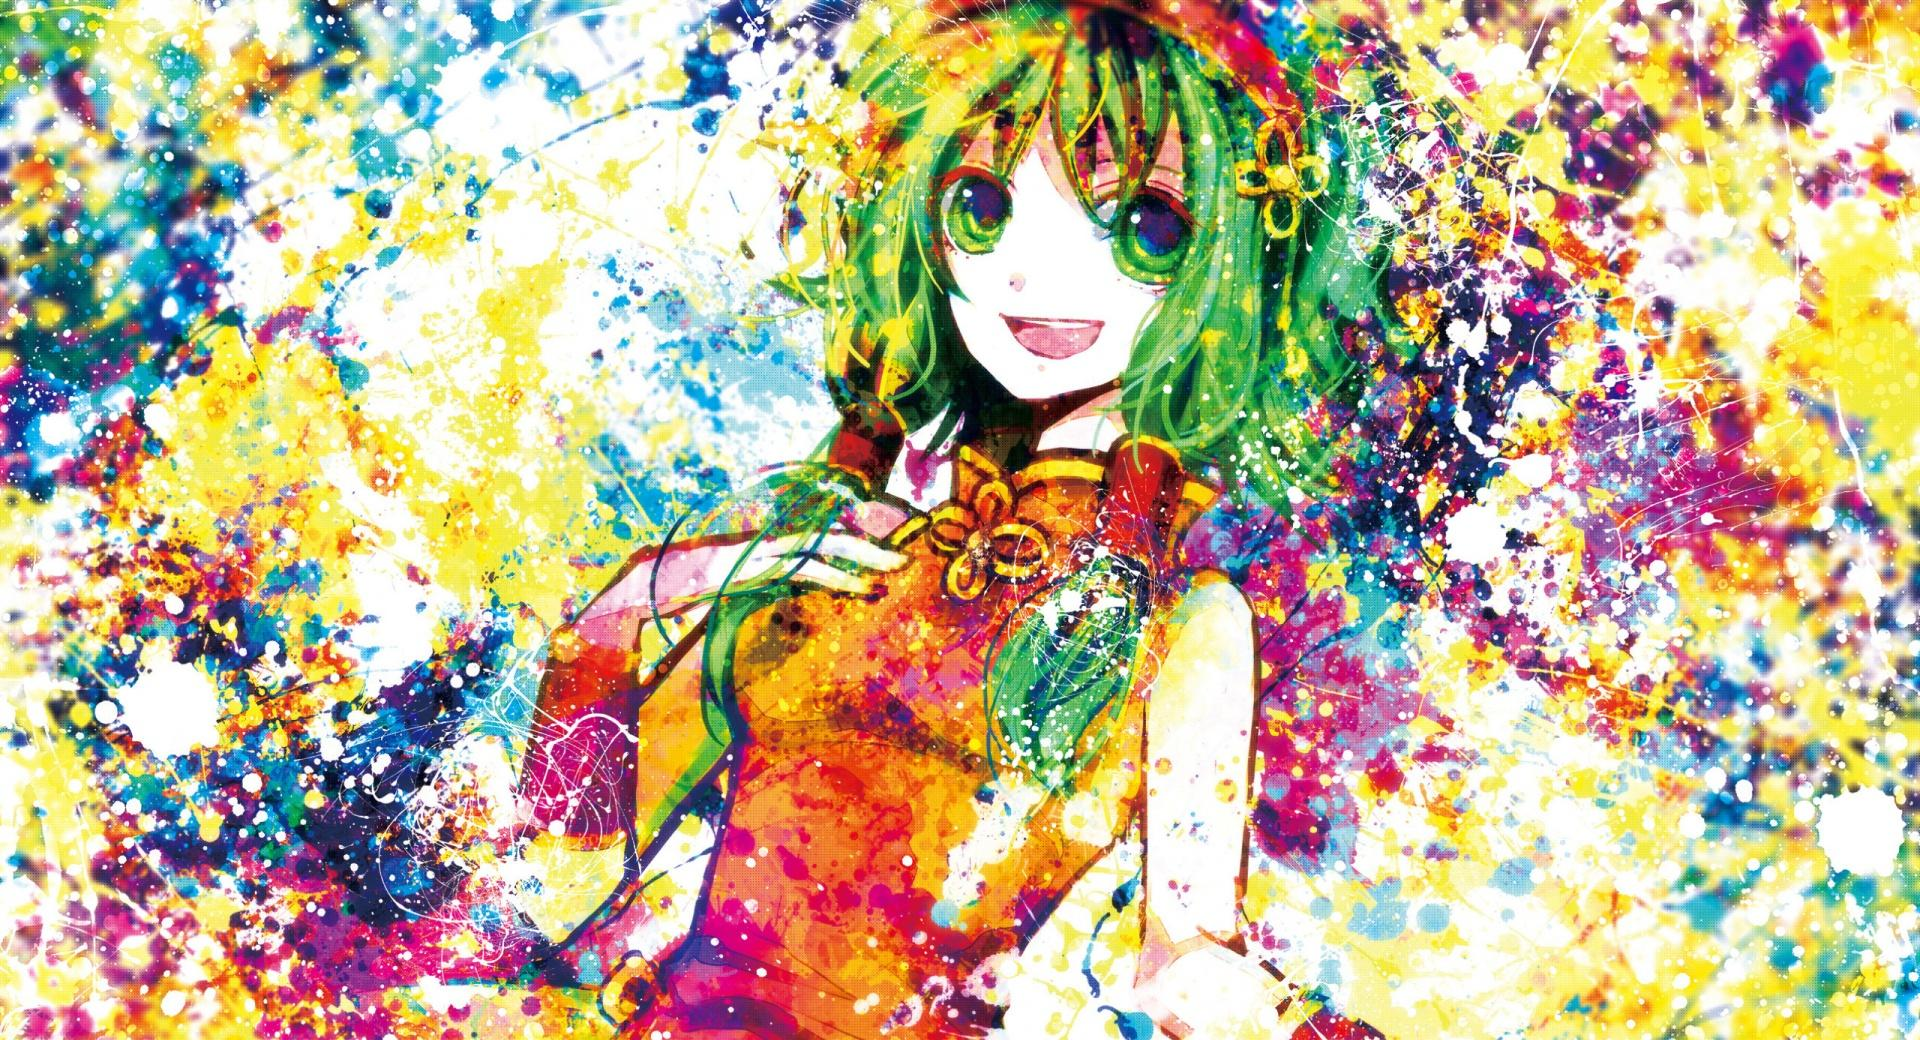 Anime Girl Colorful wallpapers HD quality